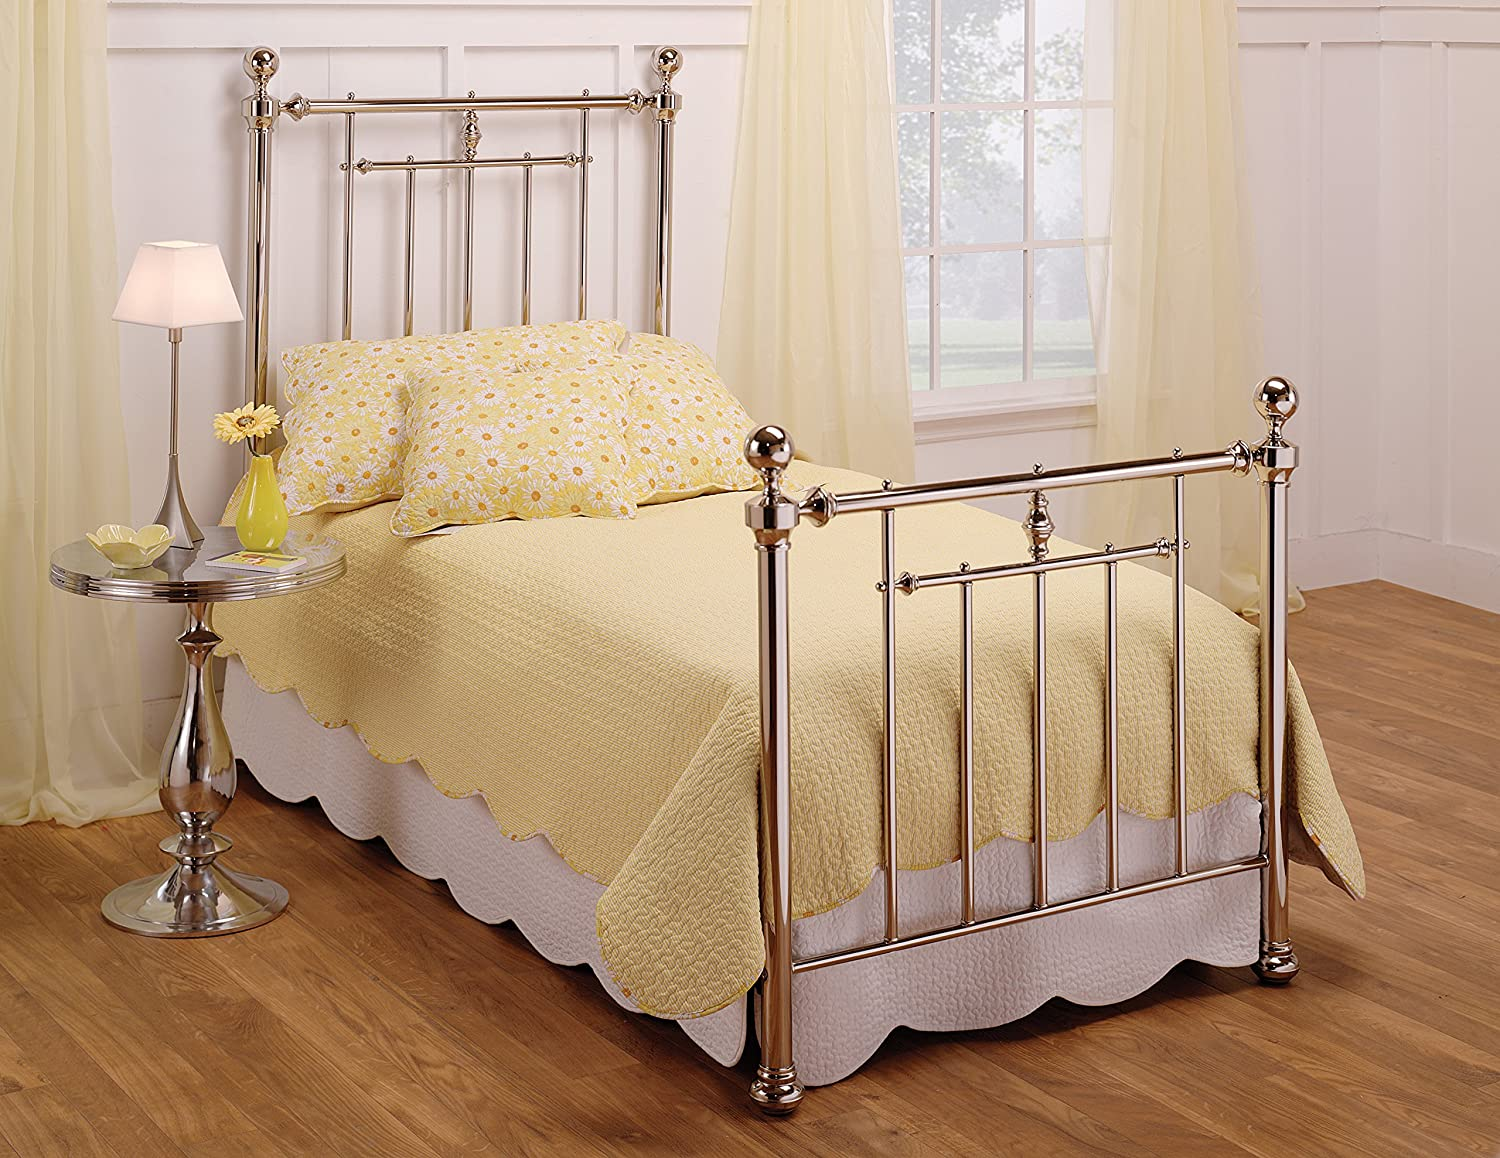 Amazon.com   Hillsdale Furniture 1251BQR Holland Bed Set With Rails, Queen,  Shiny Nickel   Headboards